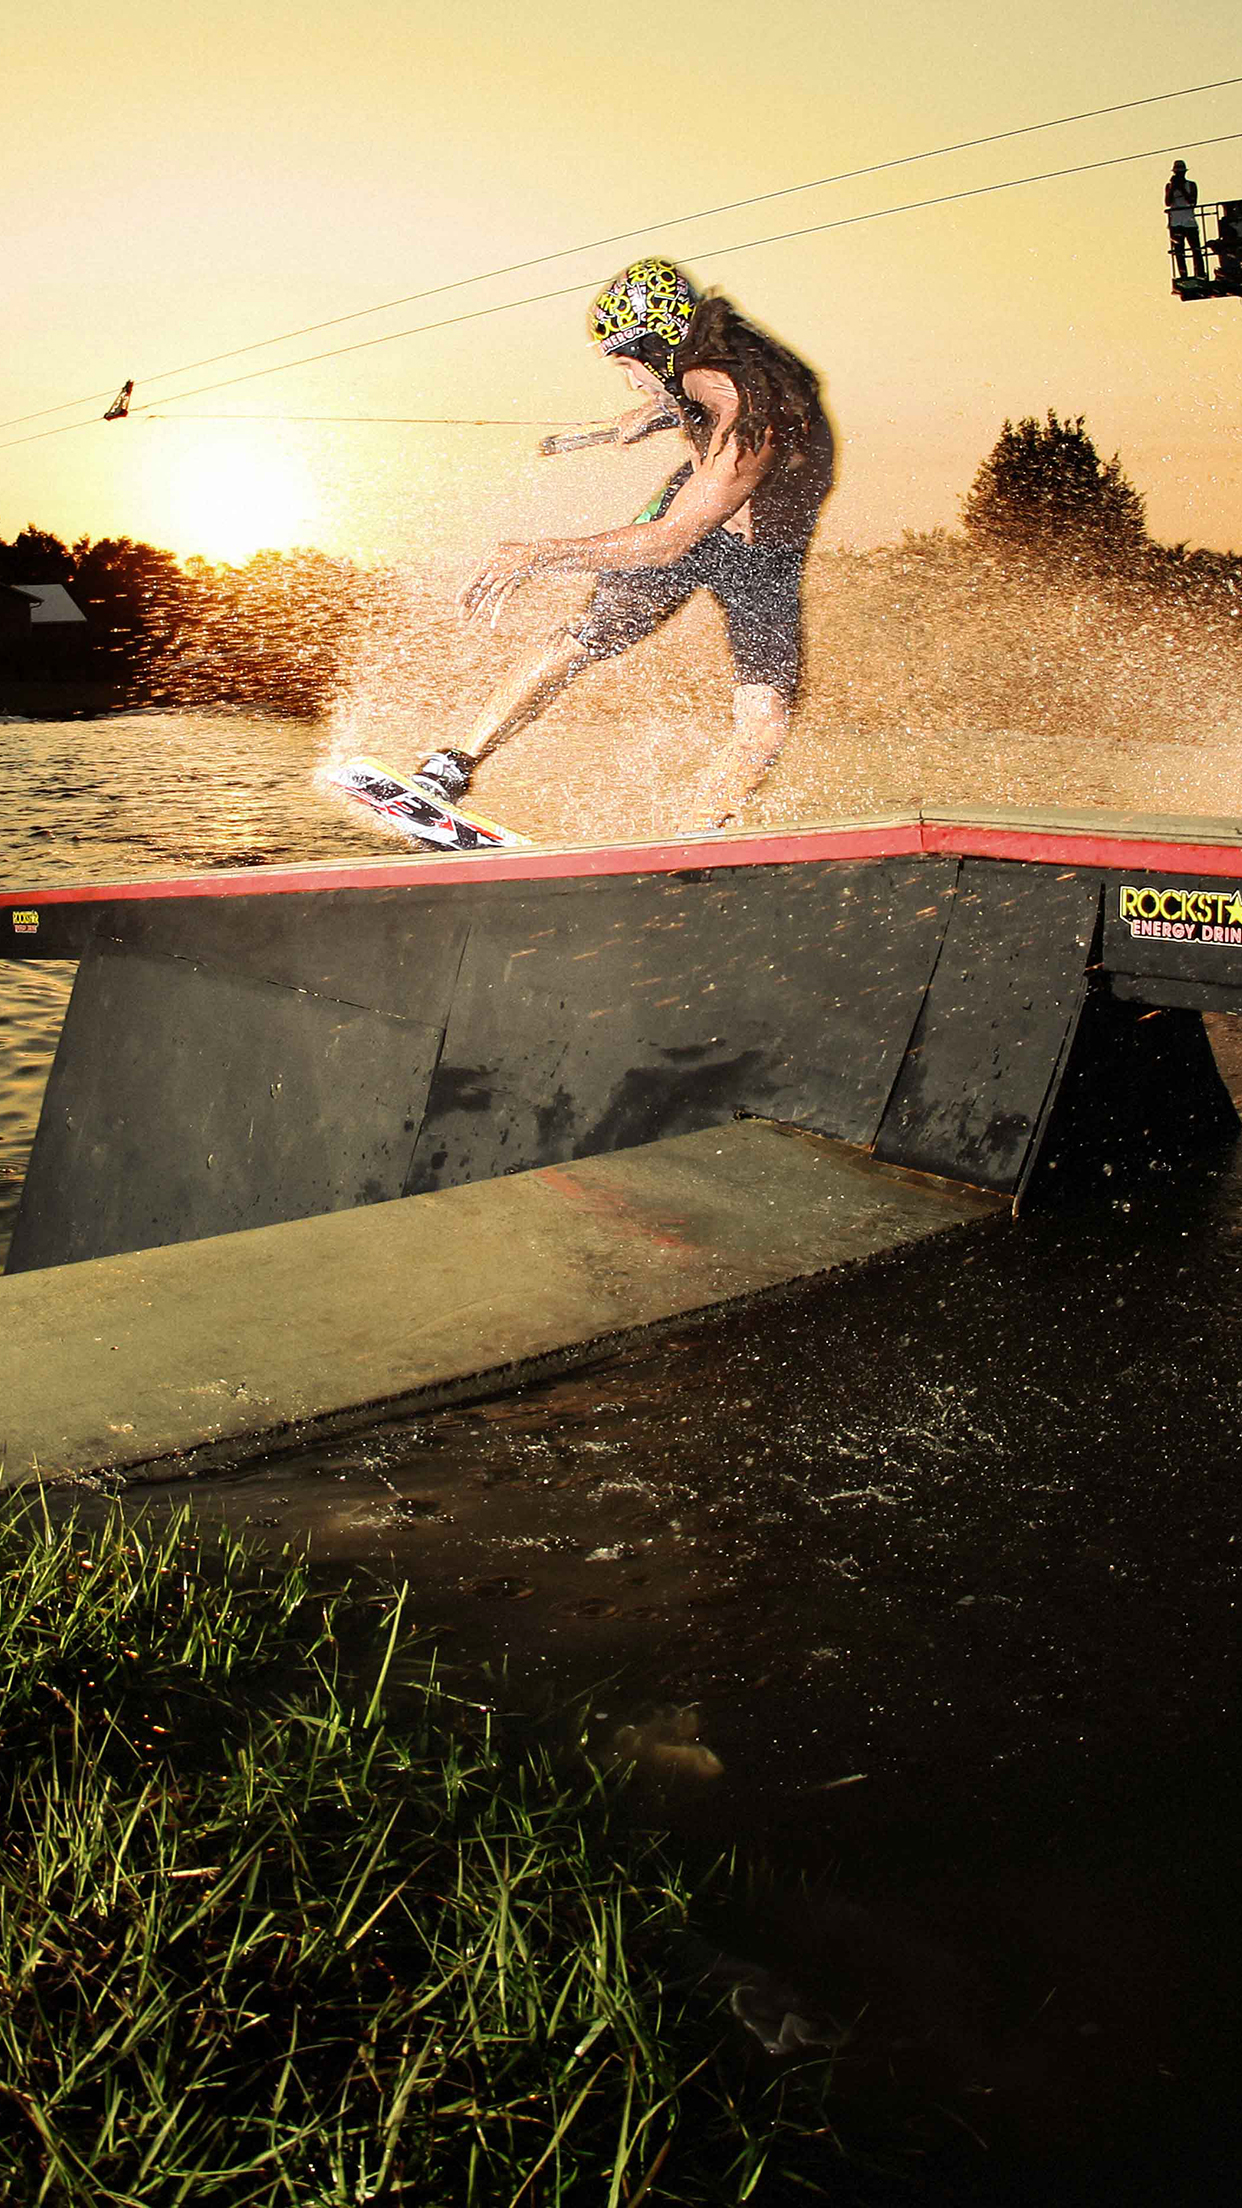 Wakeboard Dave Crawford 3Wallpapers iPhone Parallax Les 3 Wallpapers iPhone du jour (16/07/2015)